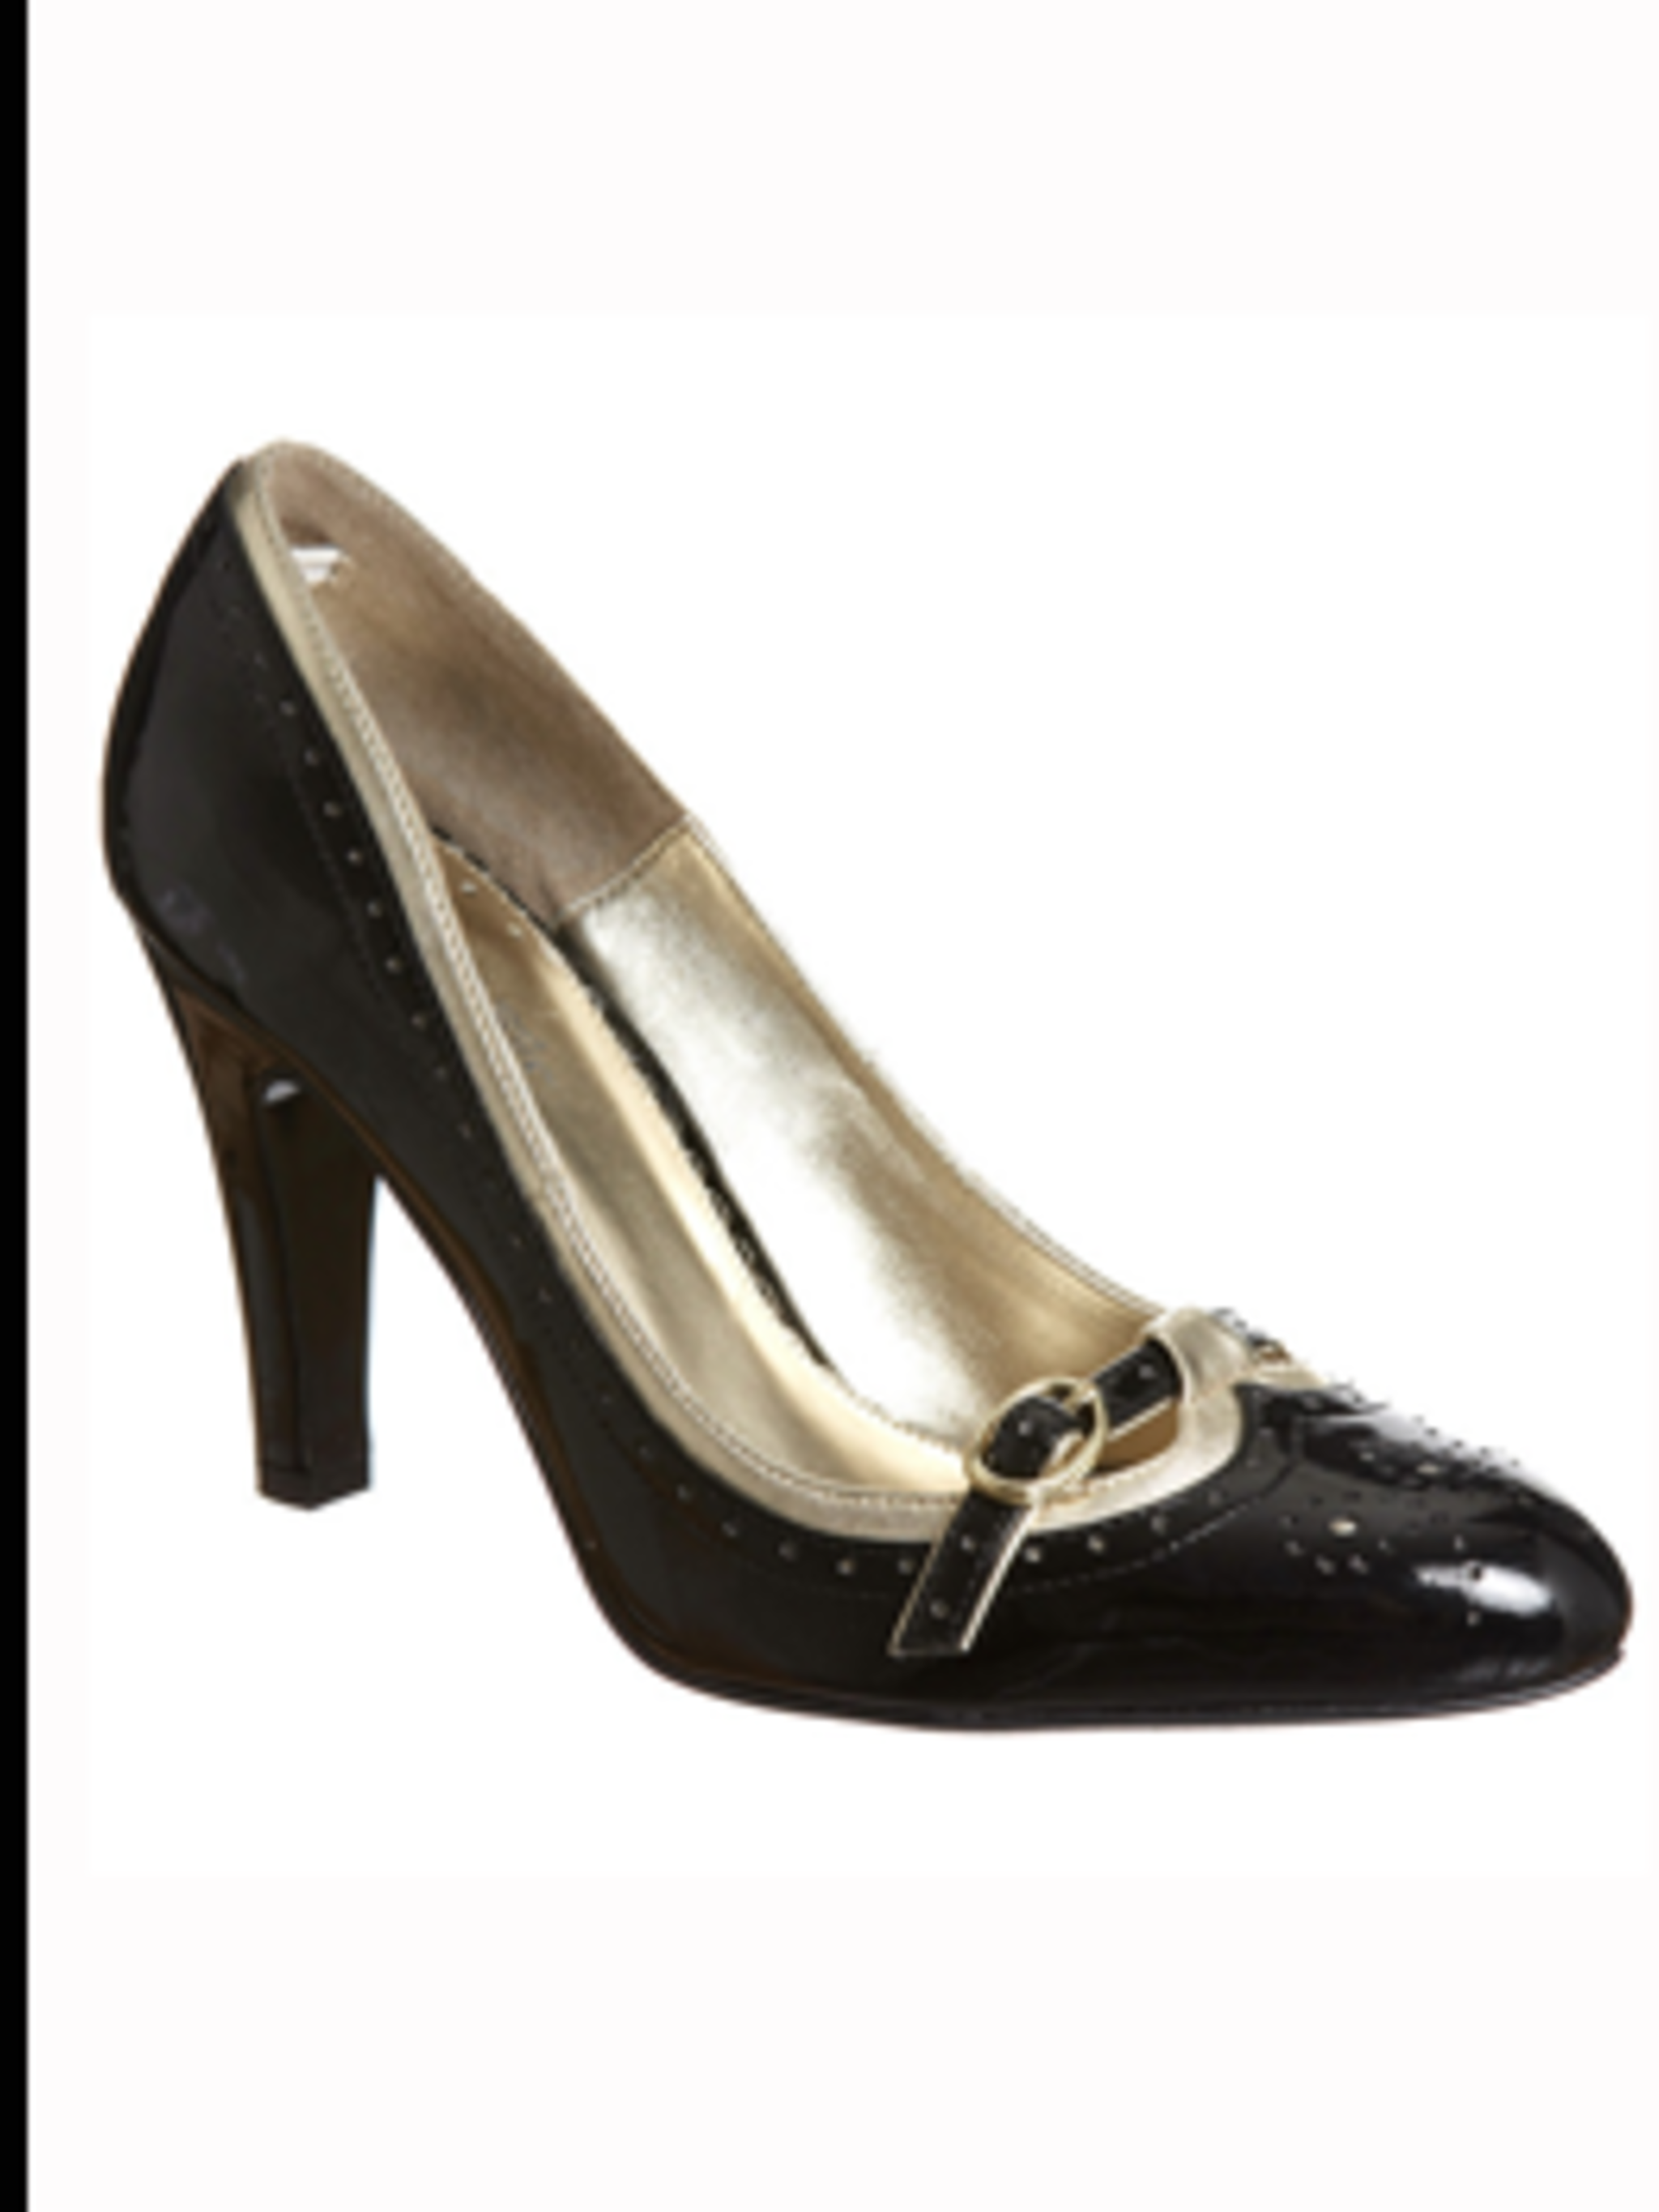 <p>Black patent court shoe, £35 from Miss Selfridge for stockists call 0845 121 4517</p>